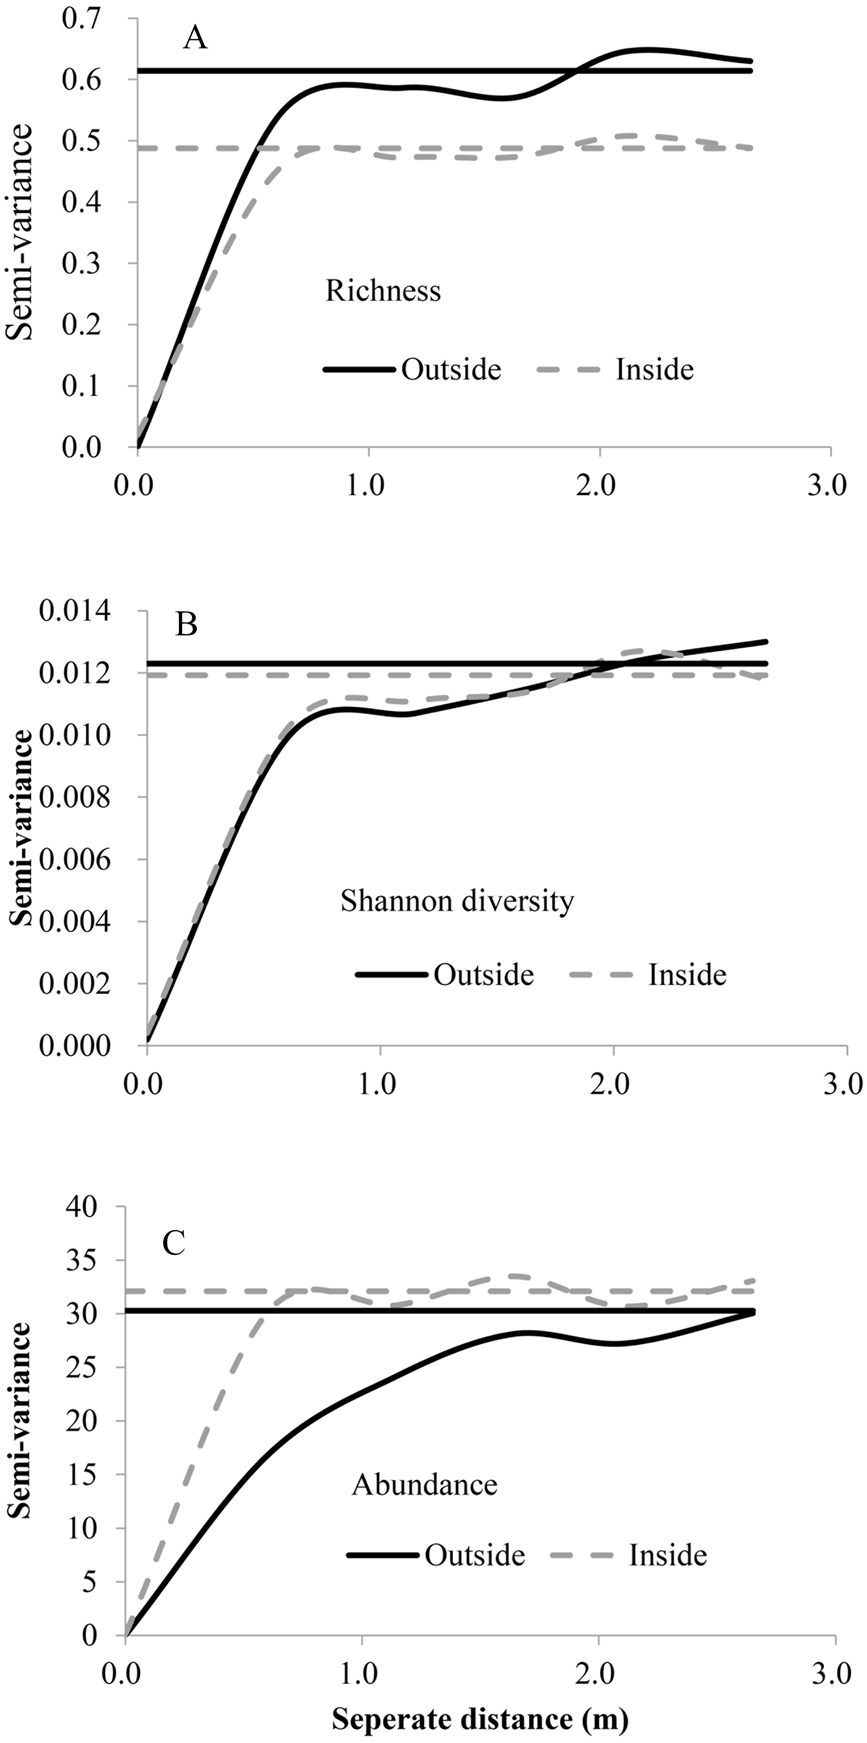 an experiment on species diversity and richness in stagnant wetland and flowing open channel Species diversity was higher at hainberg due to the greater diversity of wetland habitats riparian species are alternatively part of the aquatic zone and part of the wetland system as water levels change forming an important water-wetland ecotone.